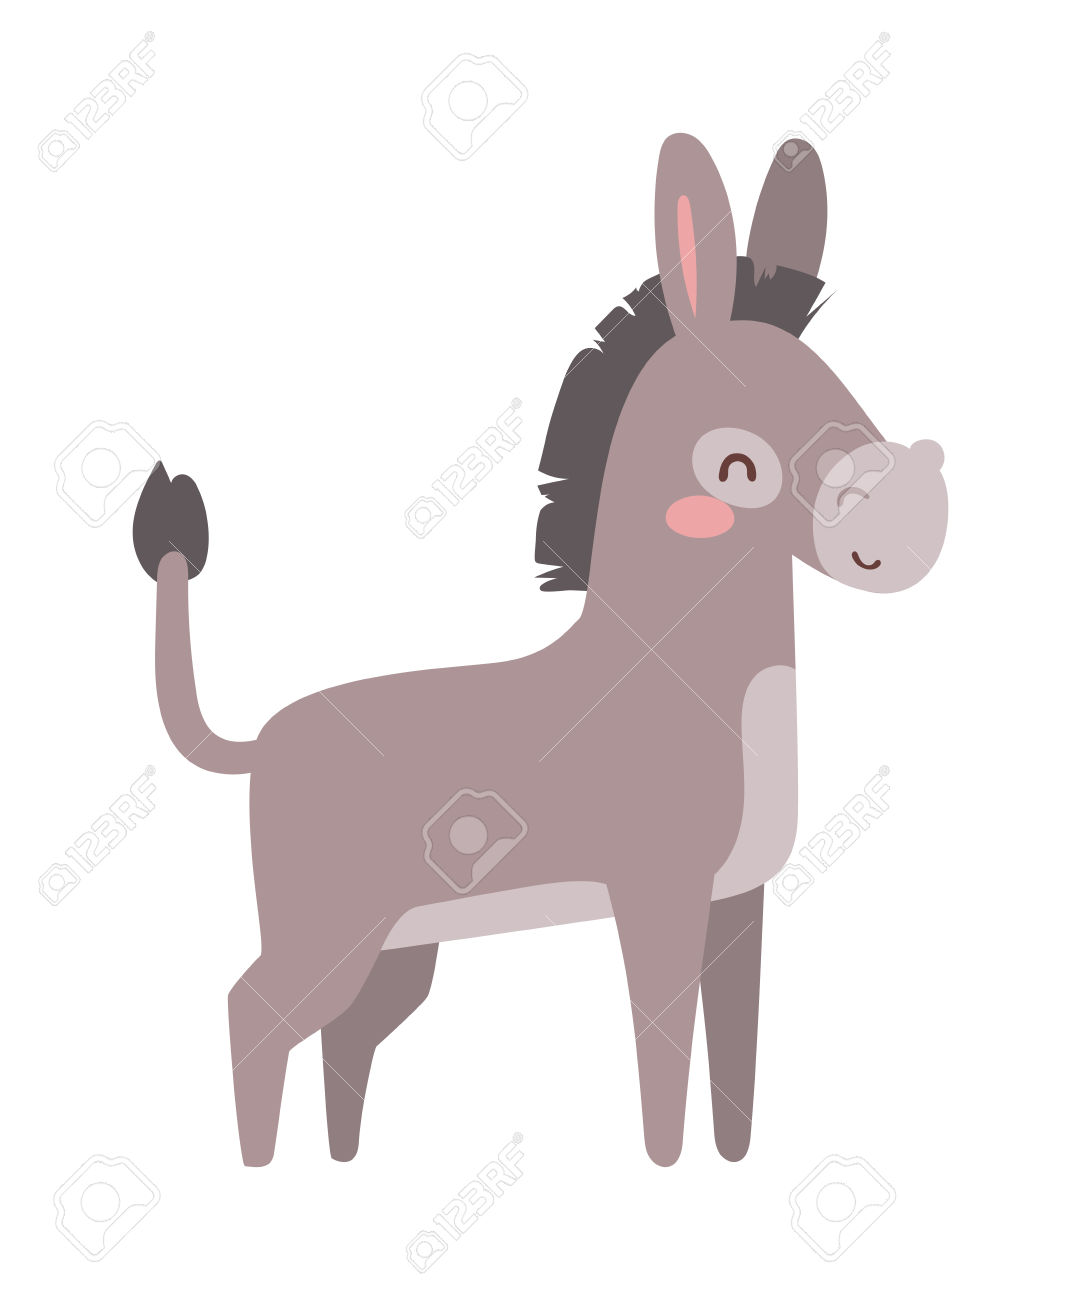 Domestic donkey clipart #9